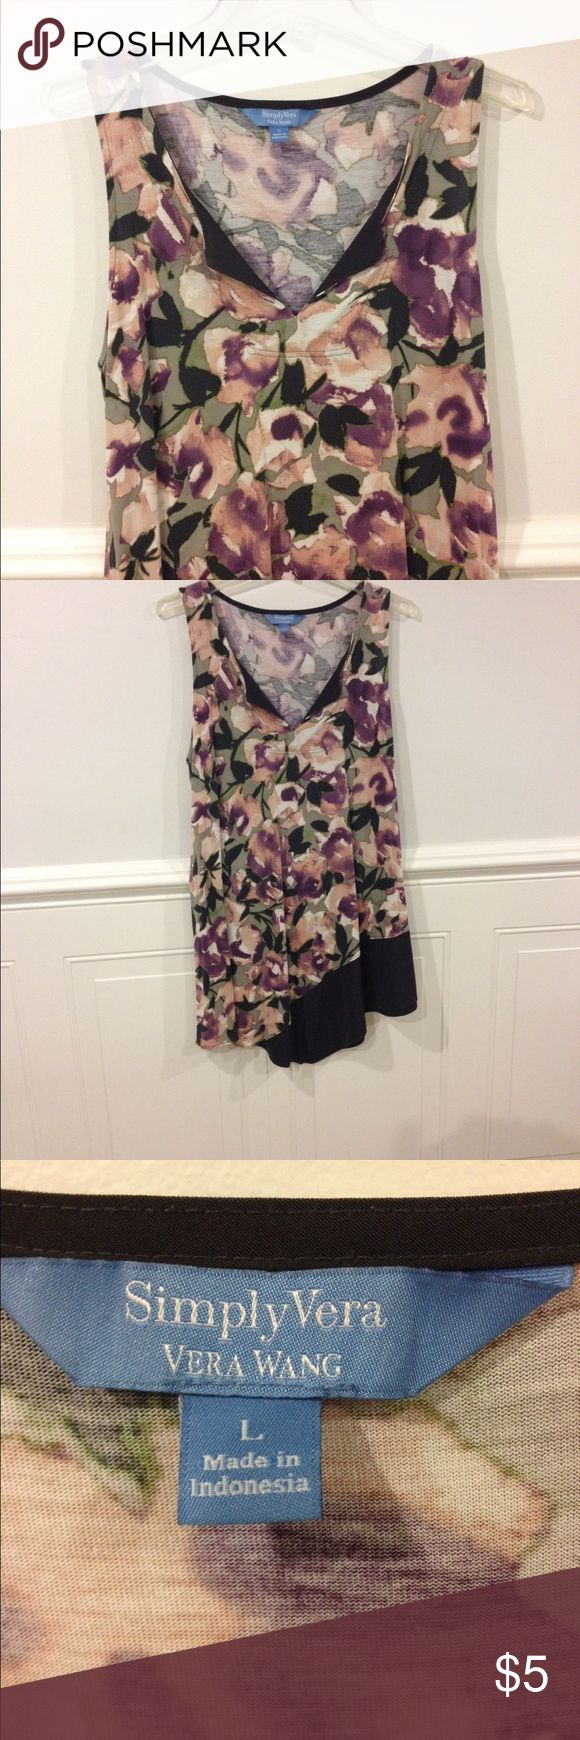 Simply Vera Large dress good condition Size Large Simply Vera dress good condition Simply Vera Vera Wang Dresses